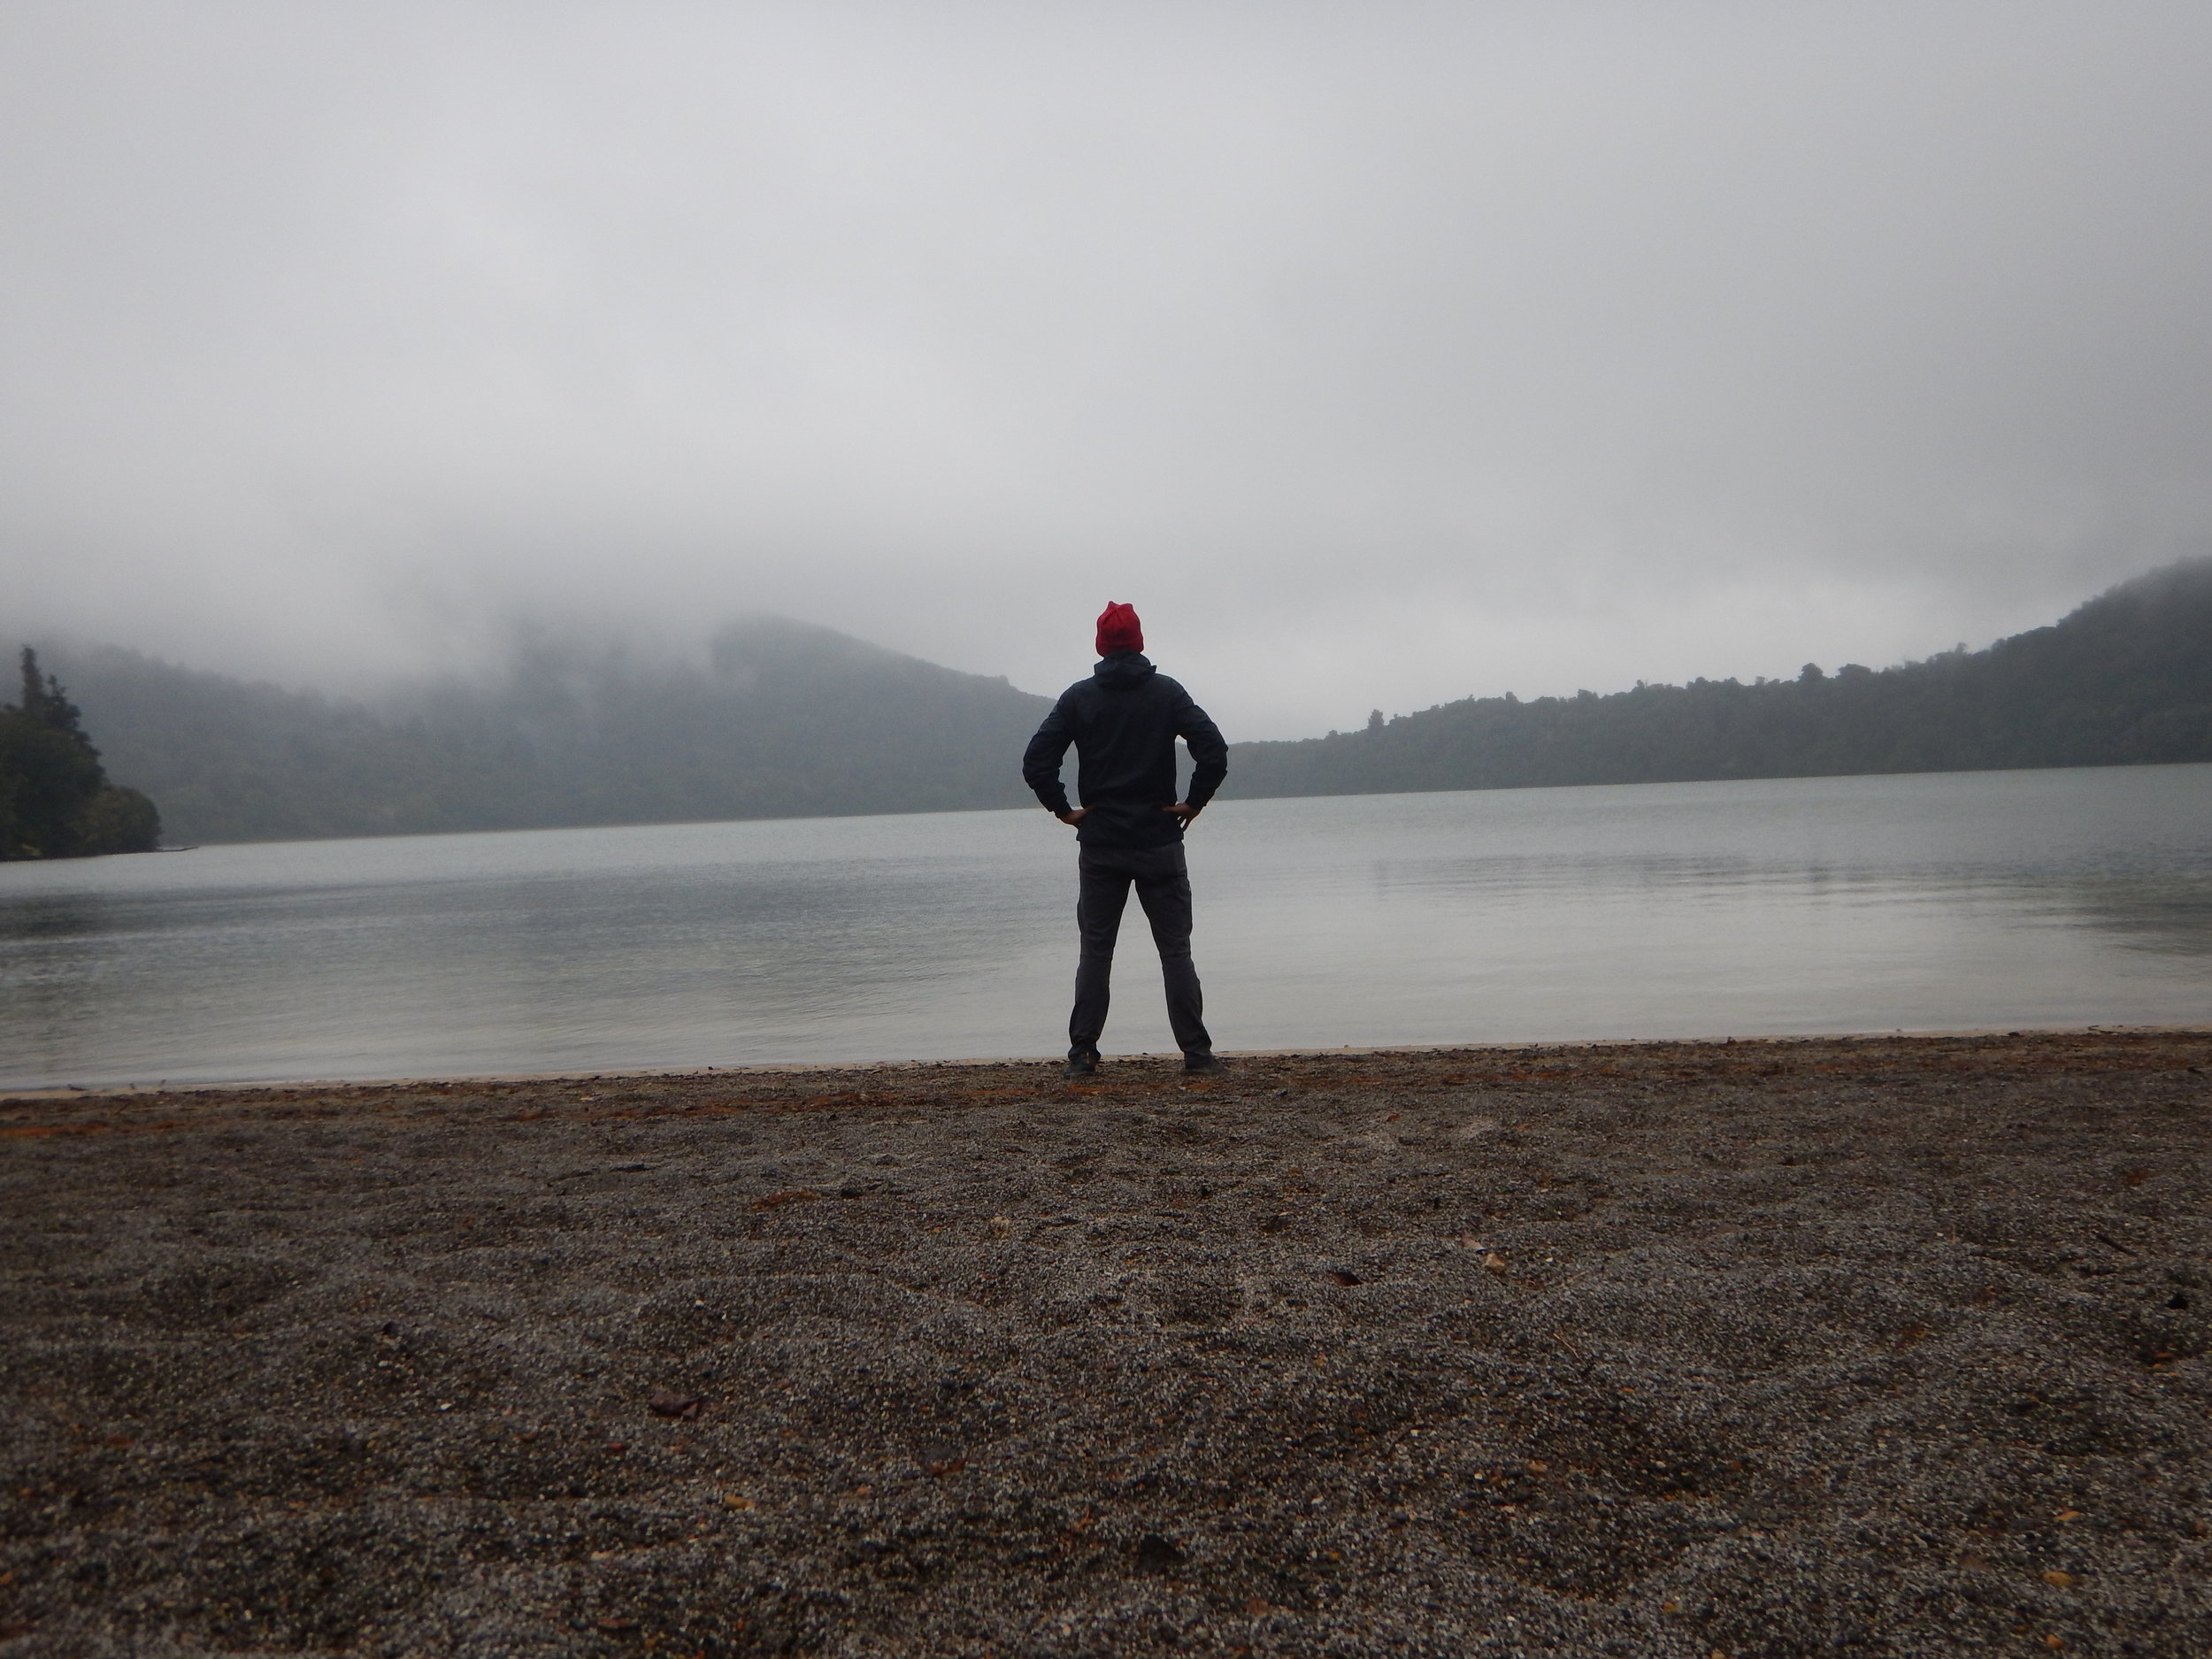 Stopping along the beach at Lake Rotopounamu to watch the fog roll in.